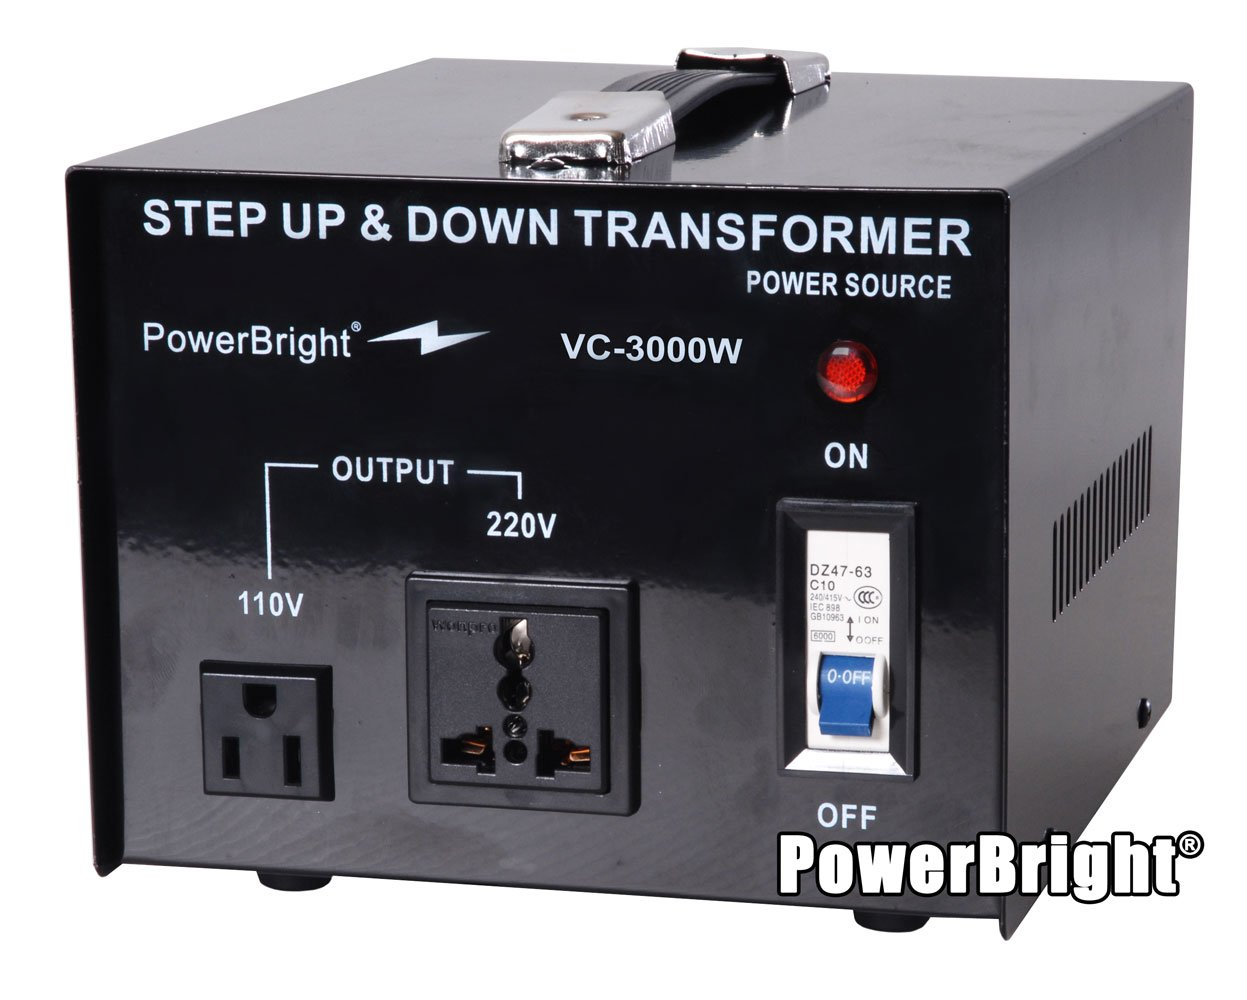 Power Bright VC3000W Voltage Transformer 3000 Watt Step Up/Down converter  110/120 Volt - 220/240 Volt by PowerBright